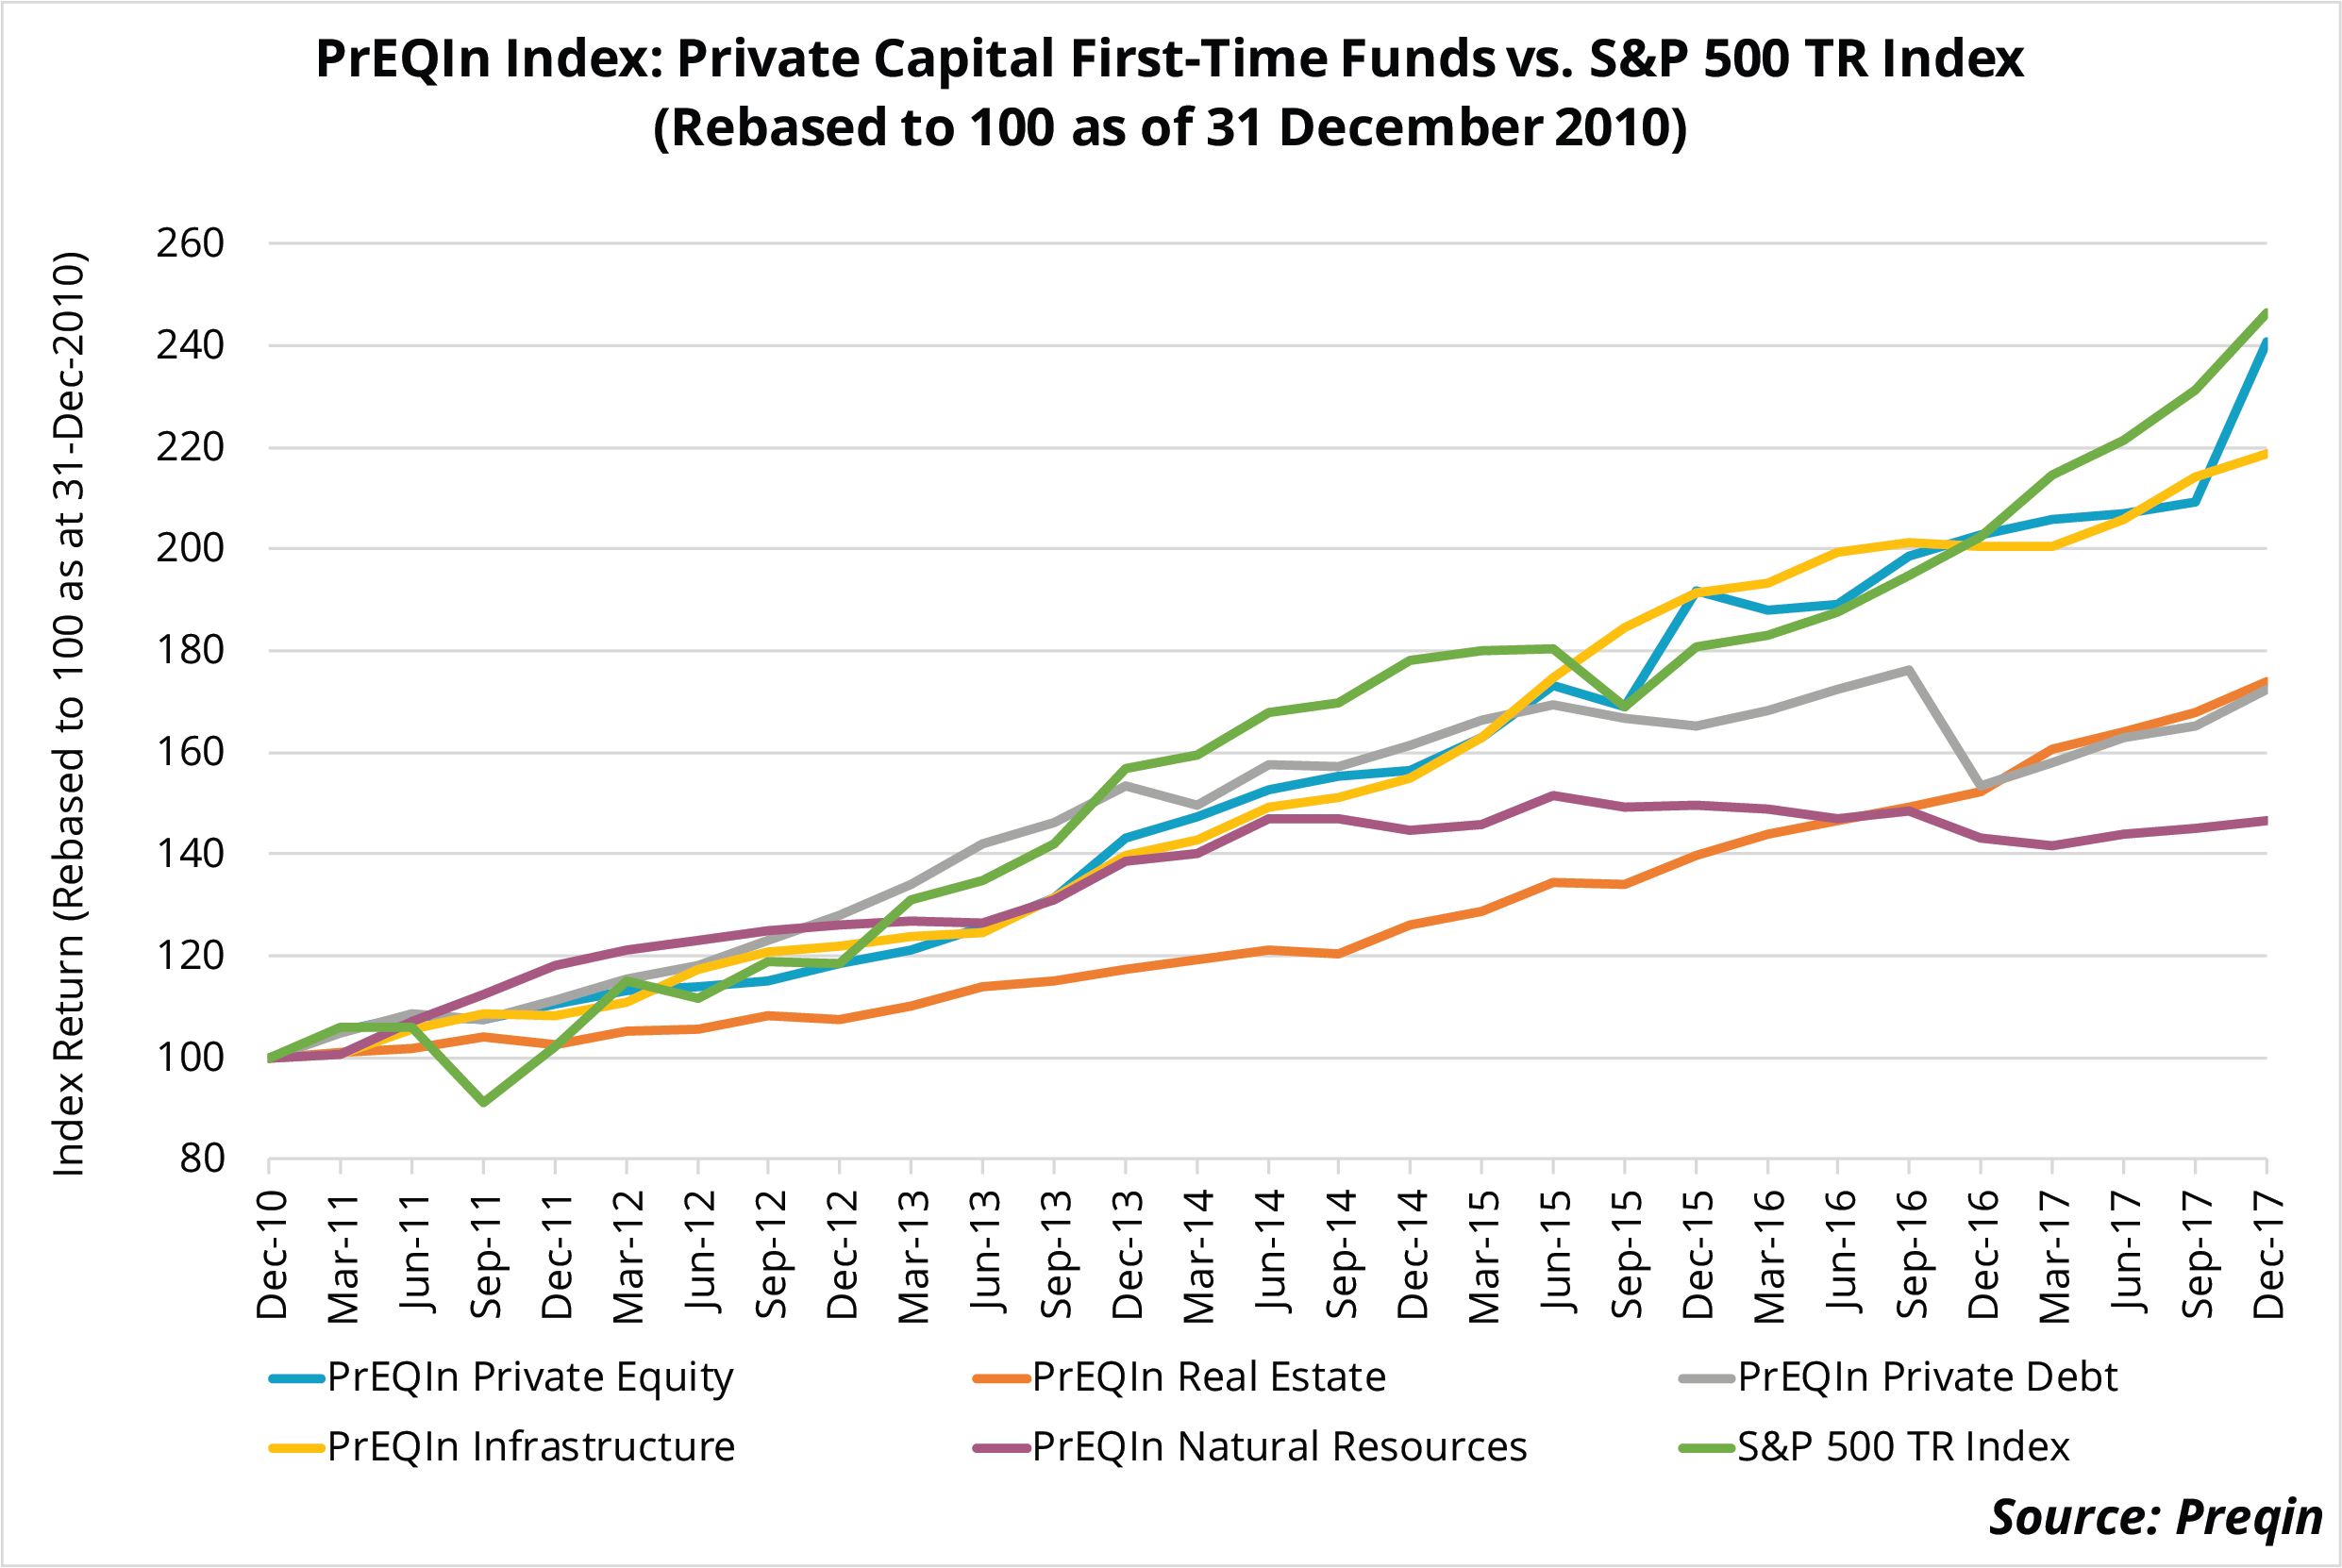 2018 Performance Monitor: First-Time Private Capital Fund